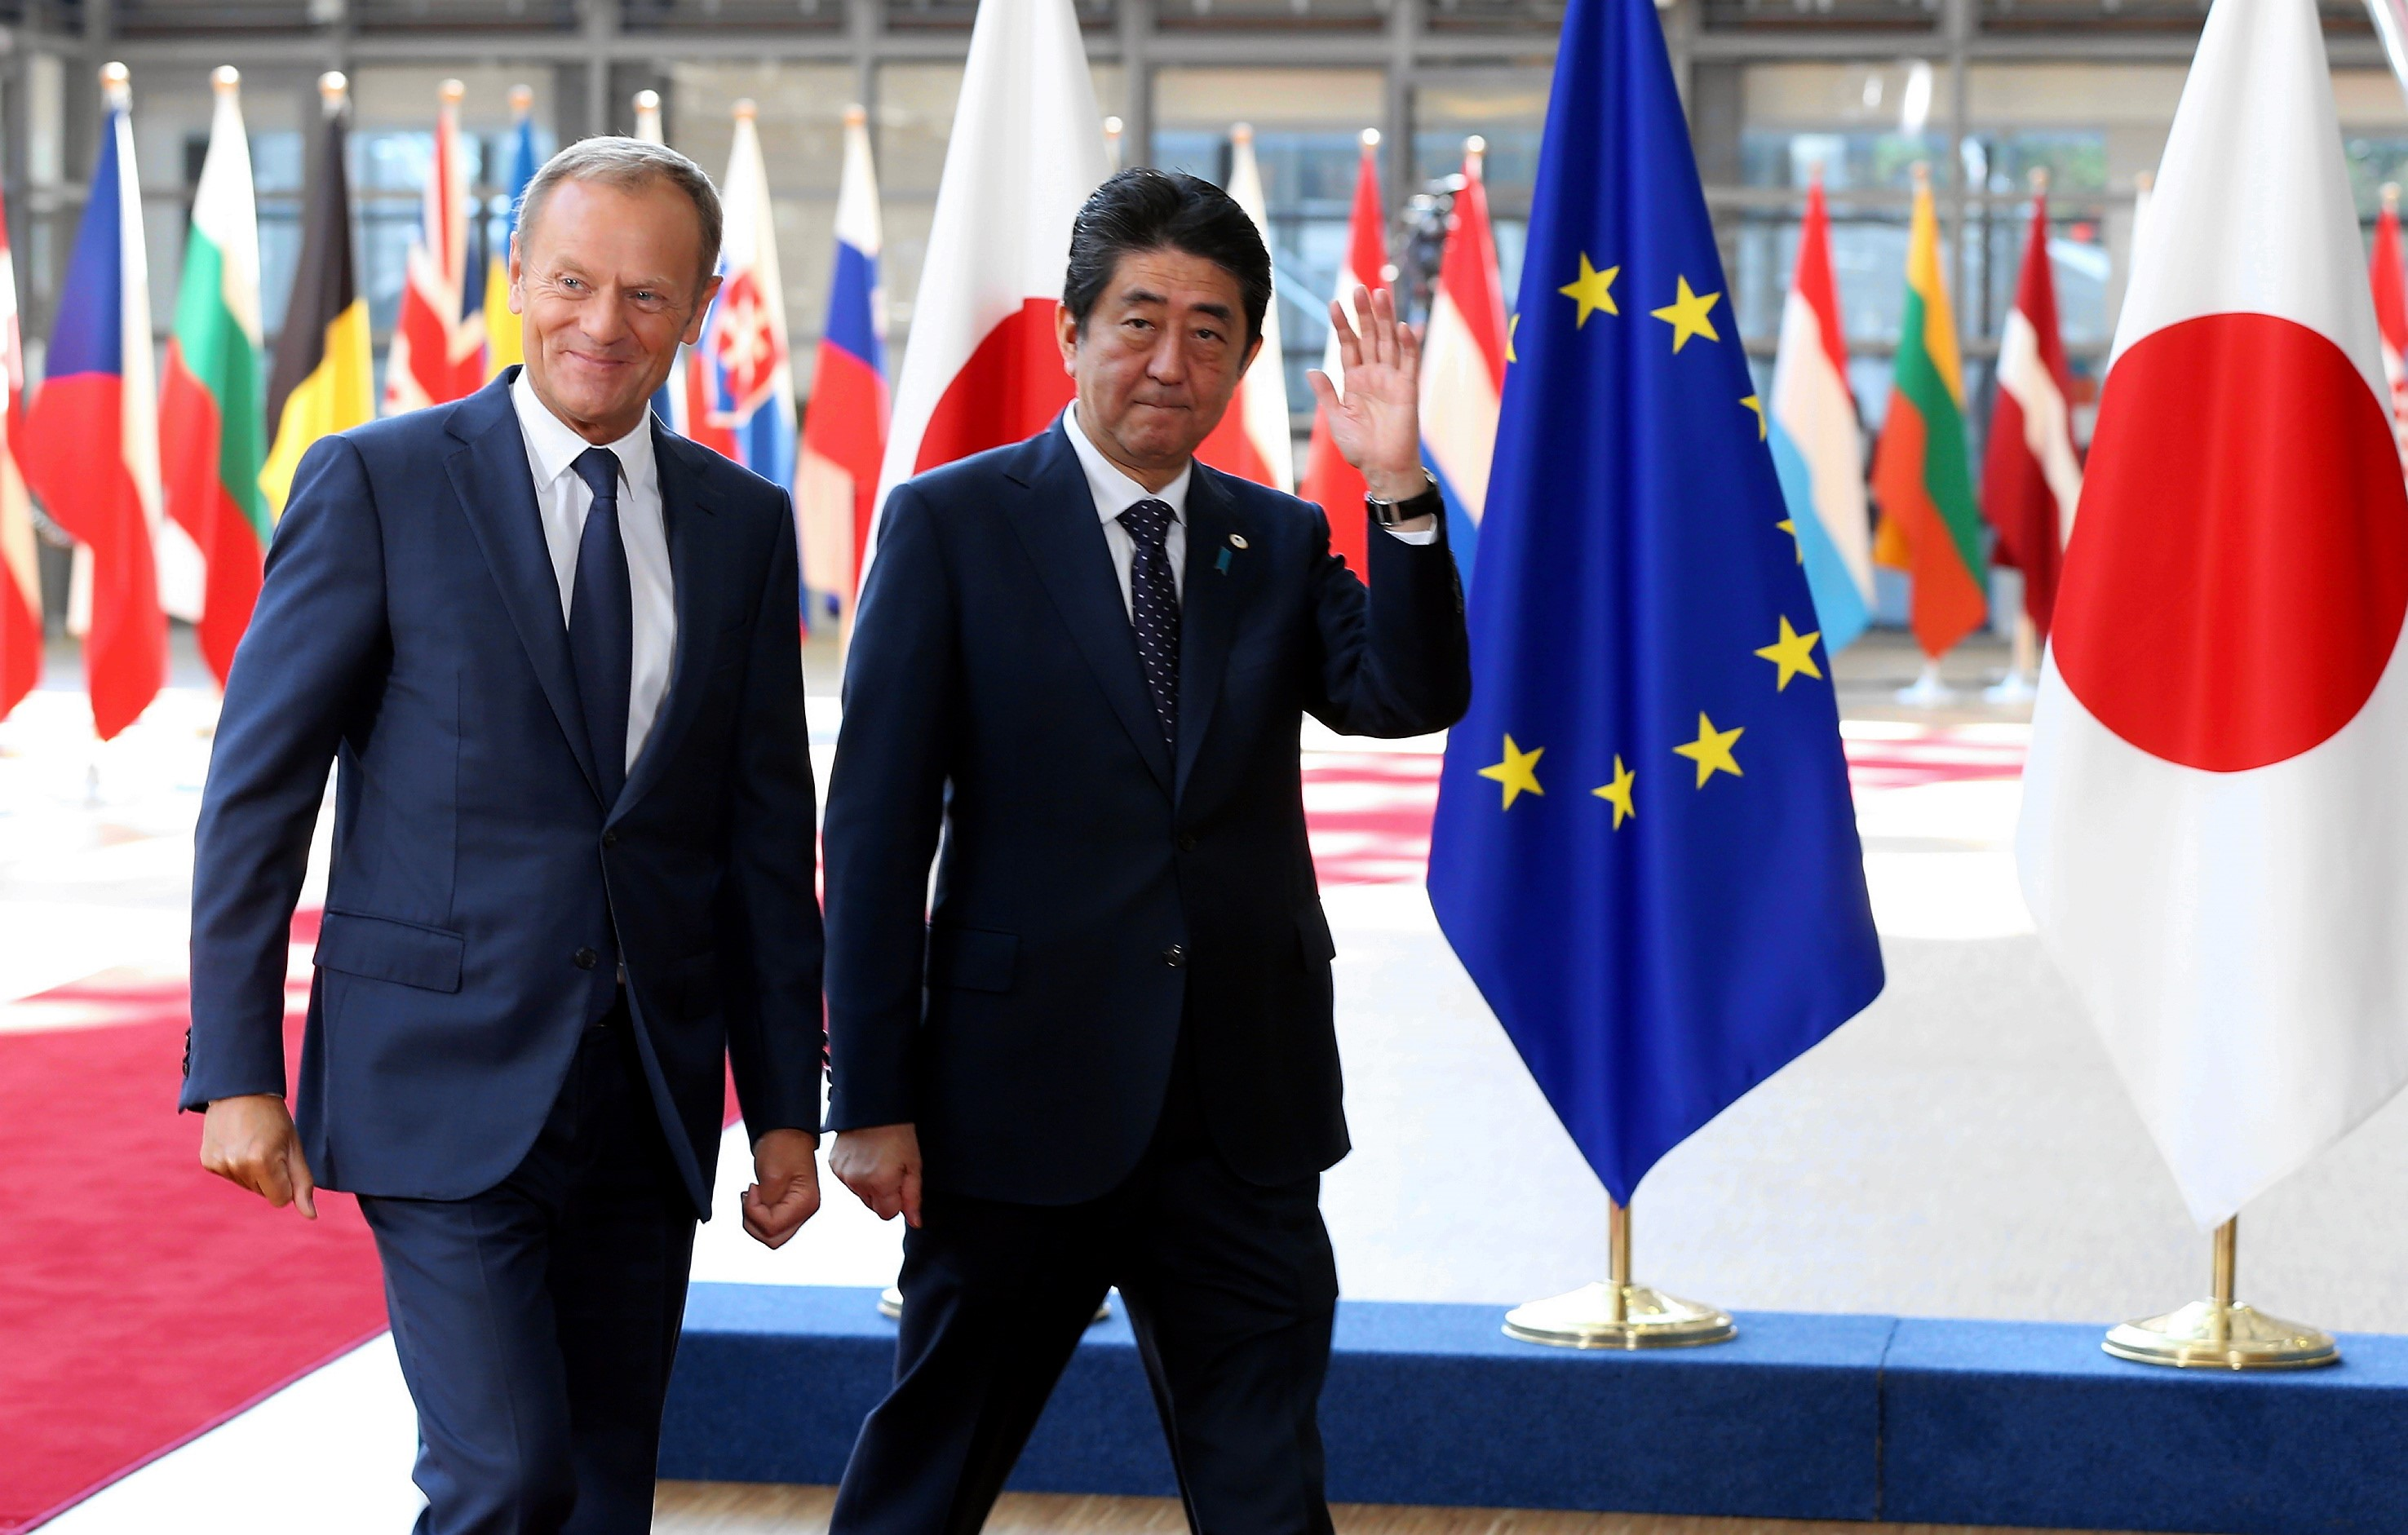 Japan and Europe's huge new trade agreement shows that US leadership is already fading